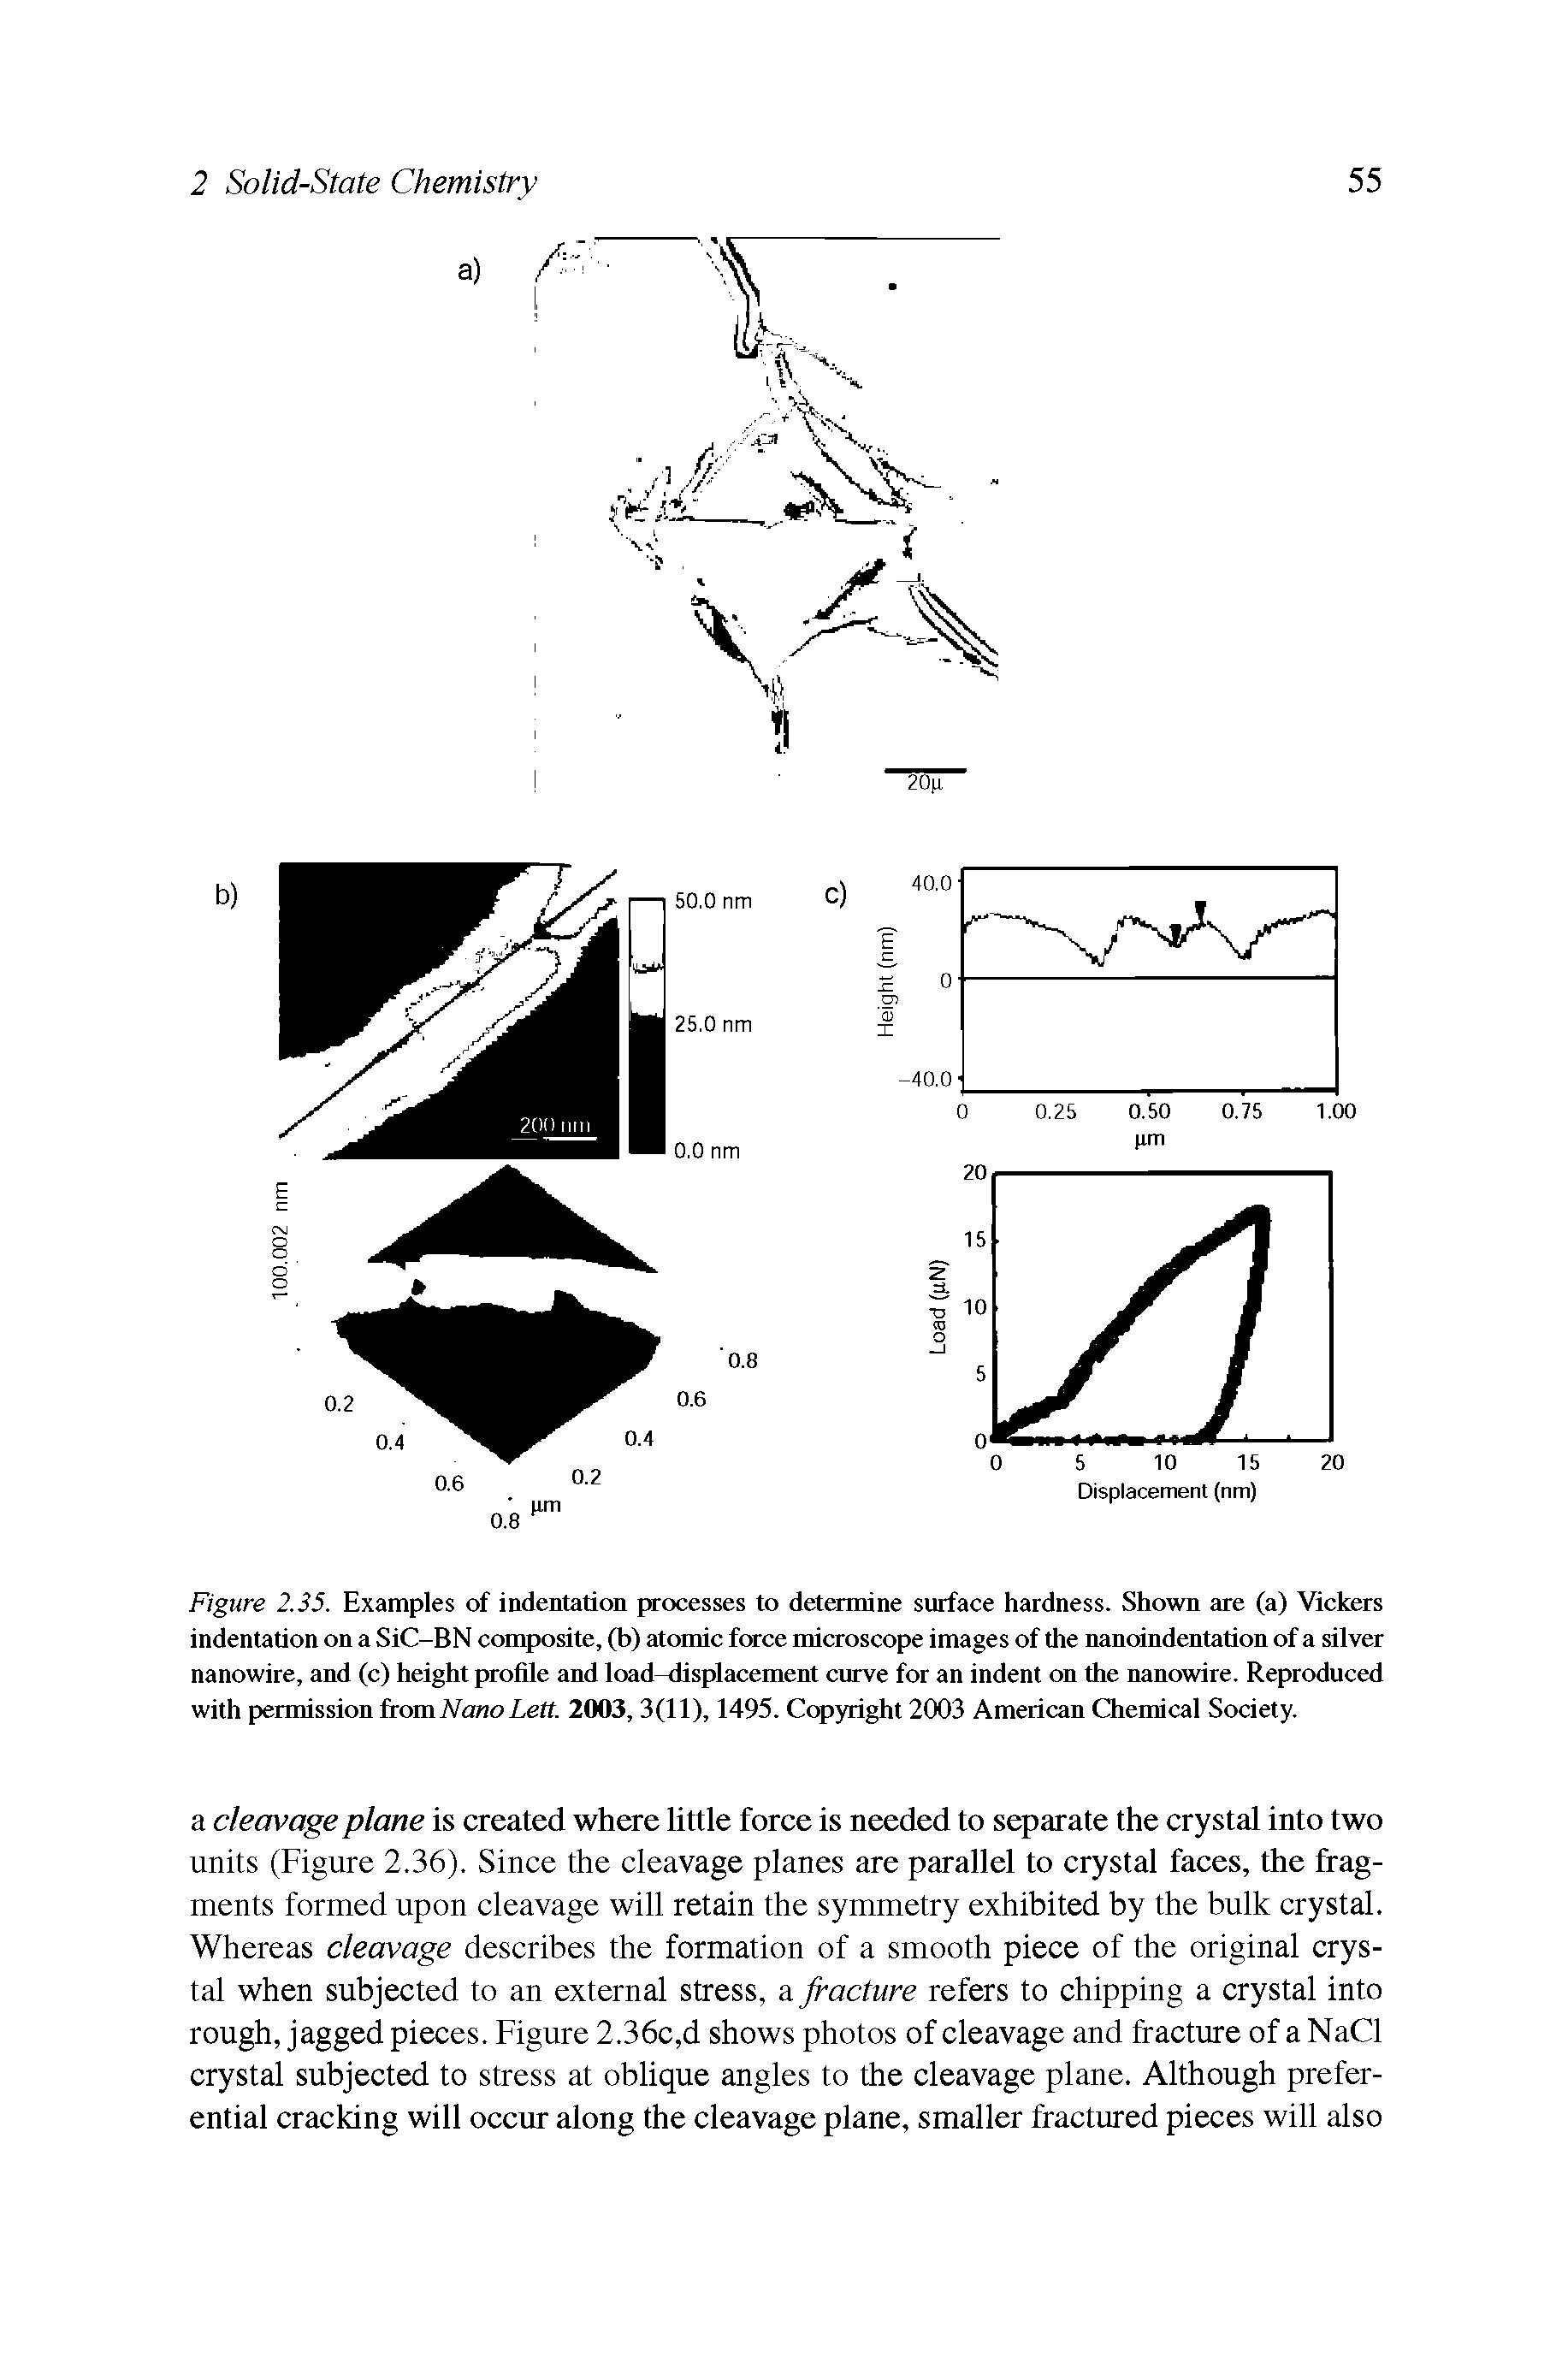 "Figure 2.35. Examples of <a href=""/info/indentation_process"">indentation processes</a> to <a href=""/info/surface_determination"">determine surface</a> hardness. Shown are (a) <a href=""/info/vickers_indentations"">Vickers indentation</a> on a SiC-BN composite, (b) <a href=""/info/atomic_force_microscope_image"">atomic force microscope images</a> of the nanoindentation of a <a href=""/info/nanowire_of_silver"">silver nanowire</a>, and (c) height profile and <a href=""/info/load_displacement_curve"">load-displacement curve</a> for an indent on the nanowire. Reproduced with permission fromNanoLett. 2003, 3(11), 1495. Copyright 2003 <a href=""/info/american_chemical"">American Chemical</a> Society."